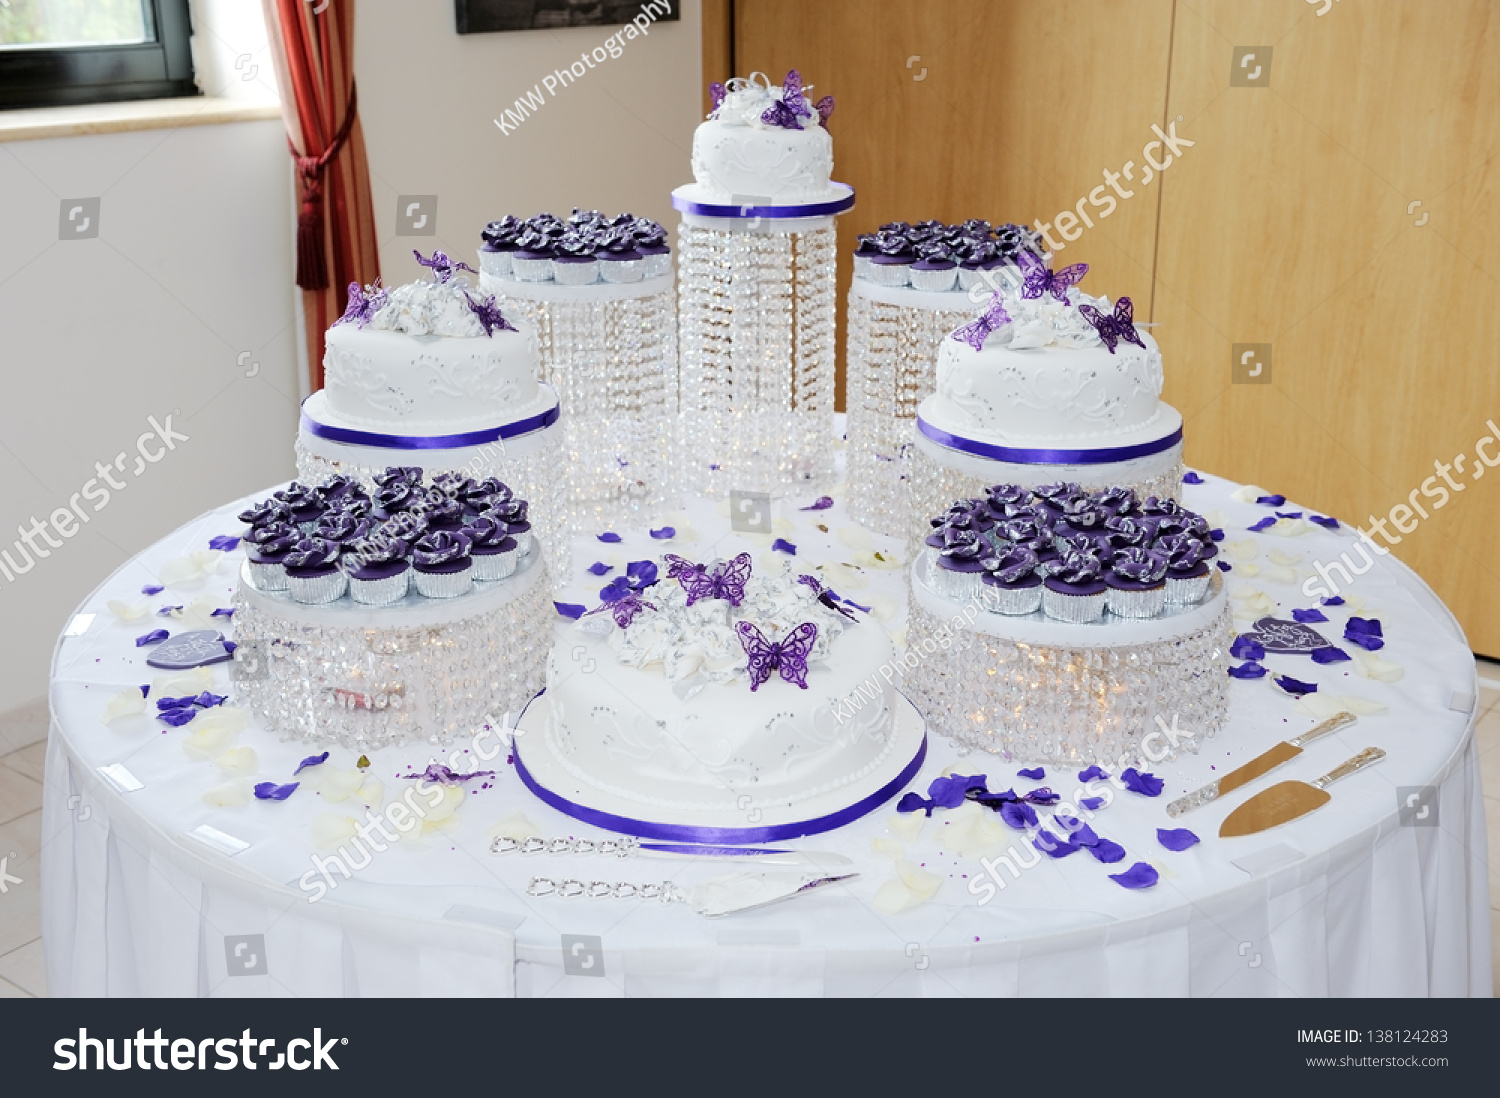 Huge Wedding White And Purple Wedding Cake At Reception